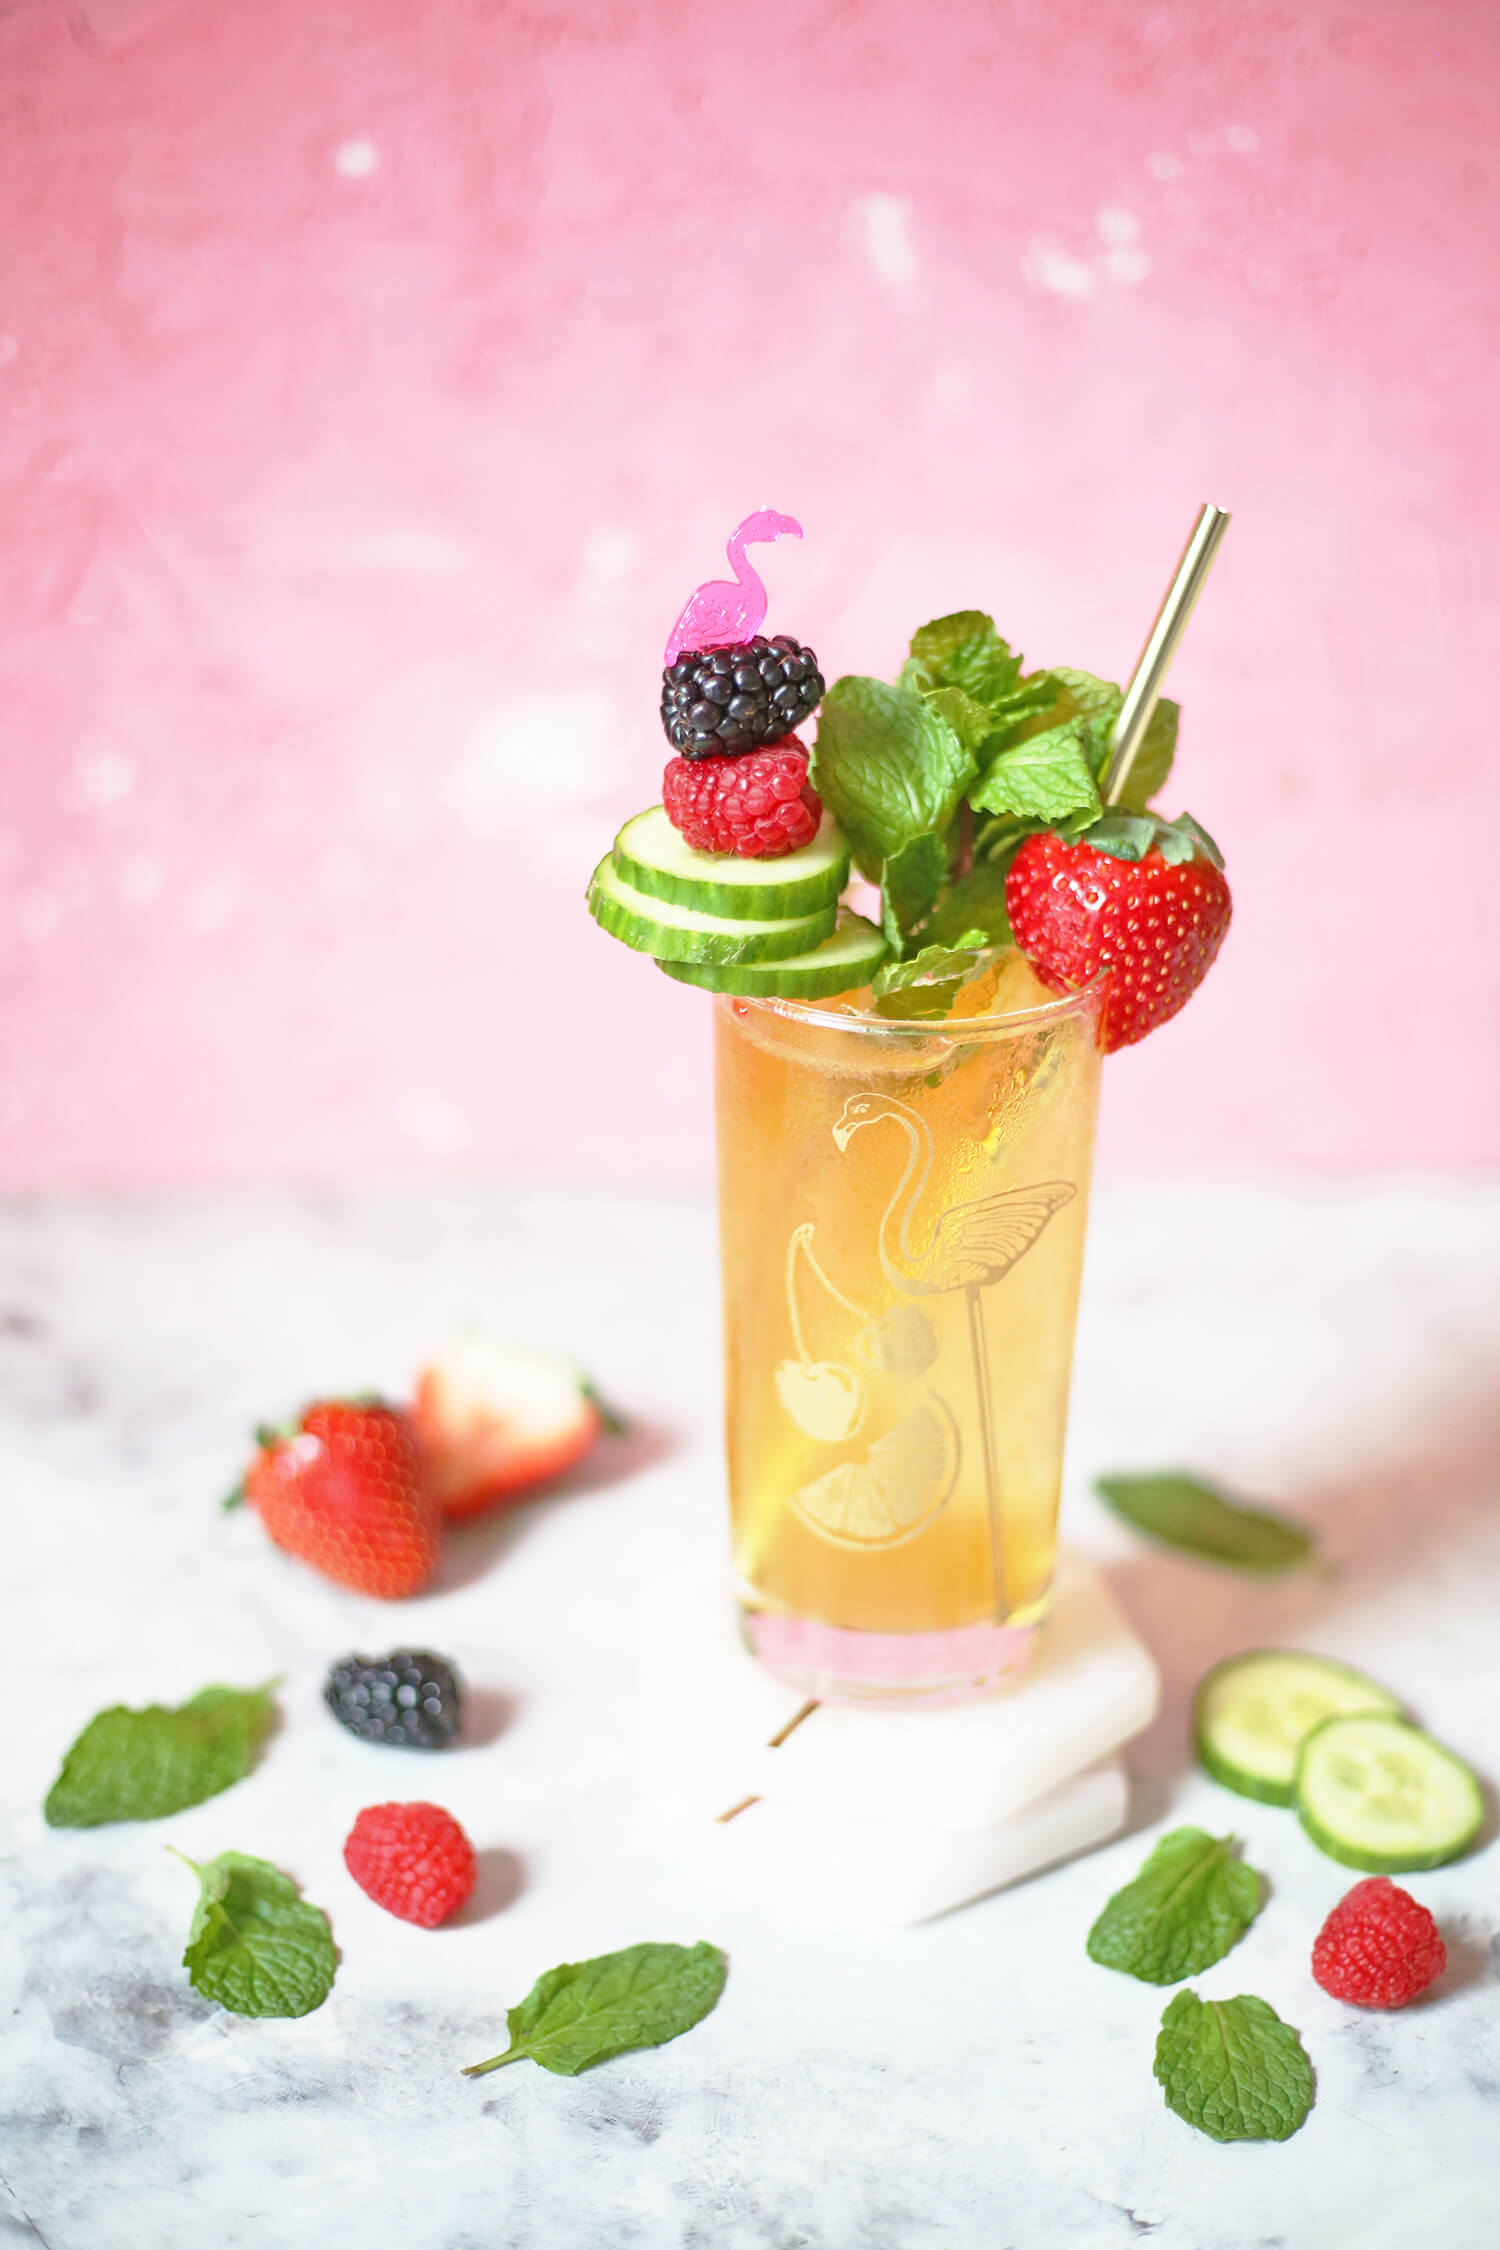 Winter Pimm's Cup